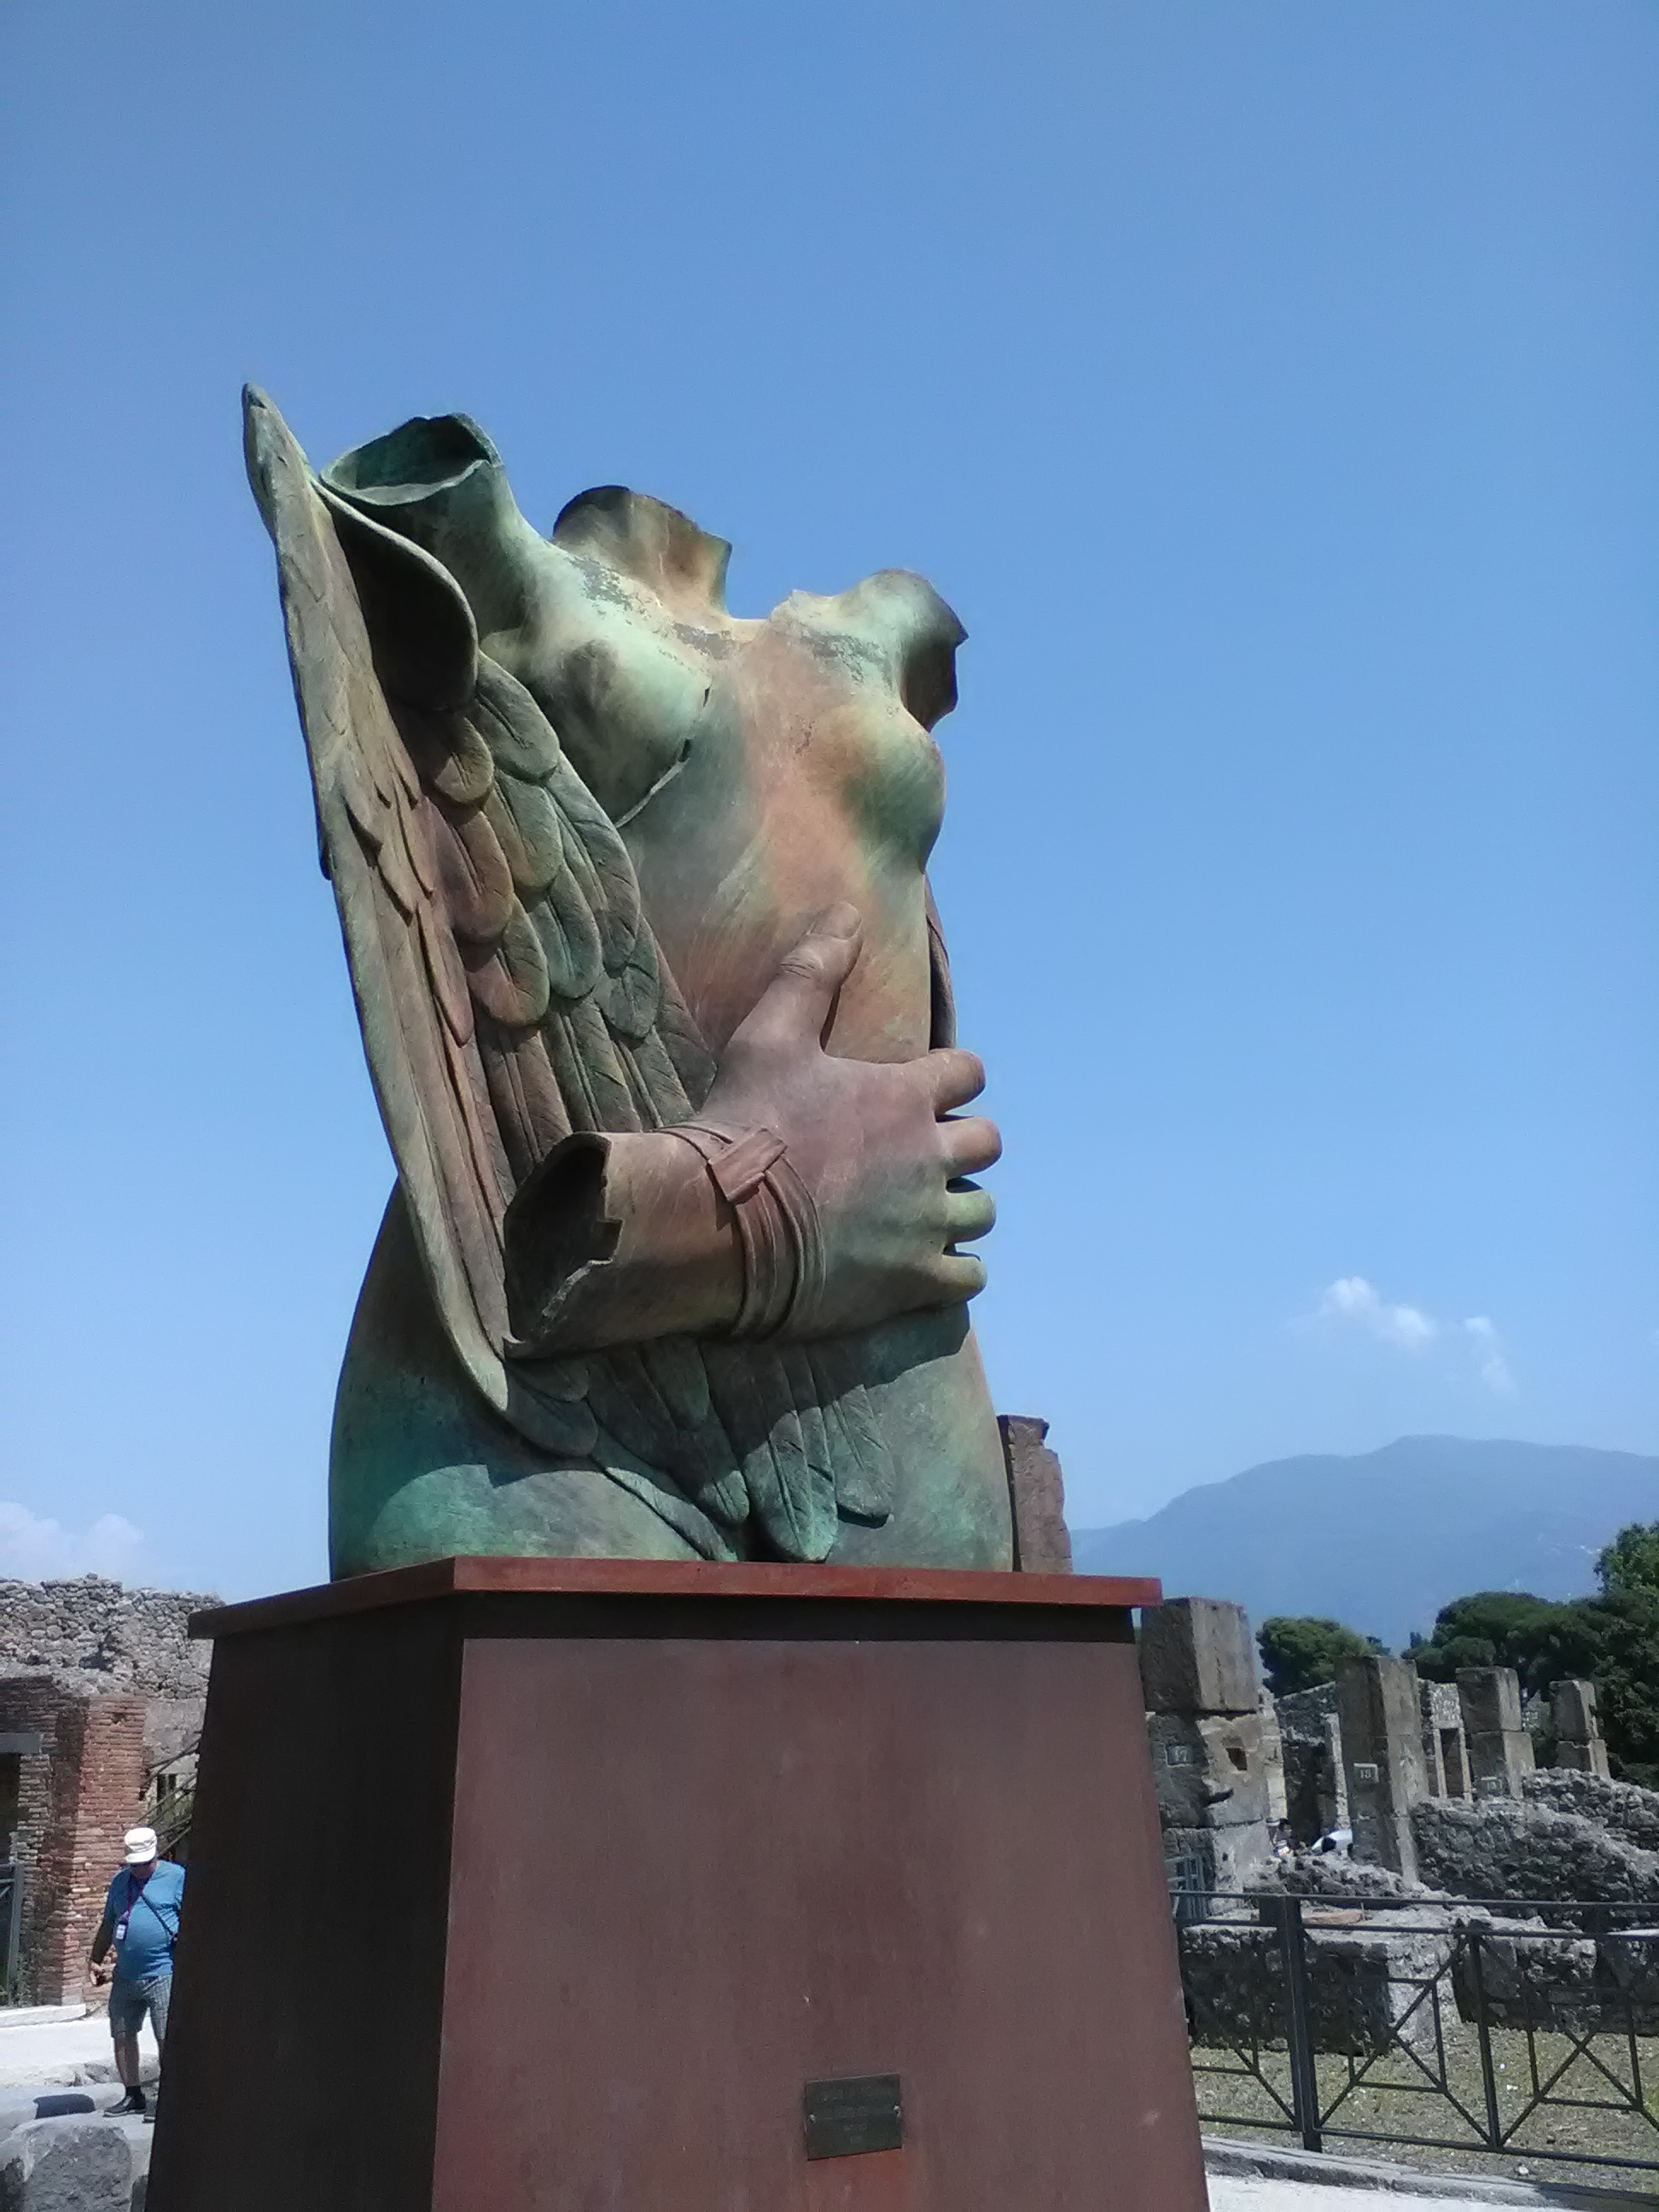 Mitoraji in Pompeii exhibition - 'Winged Eros'